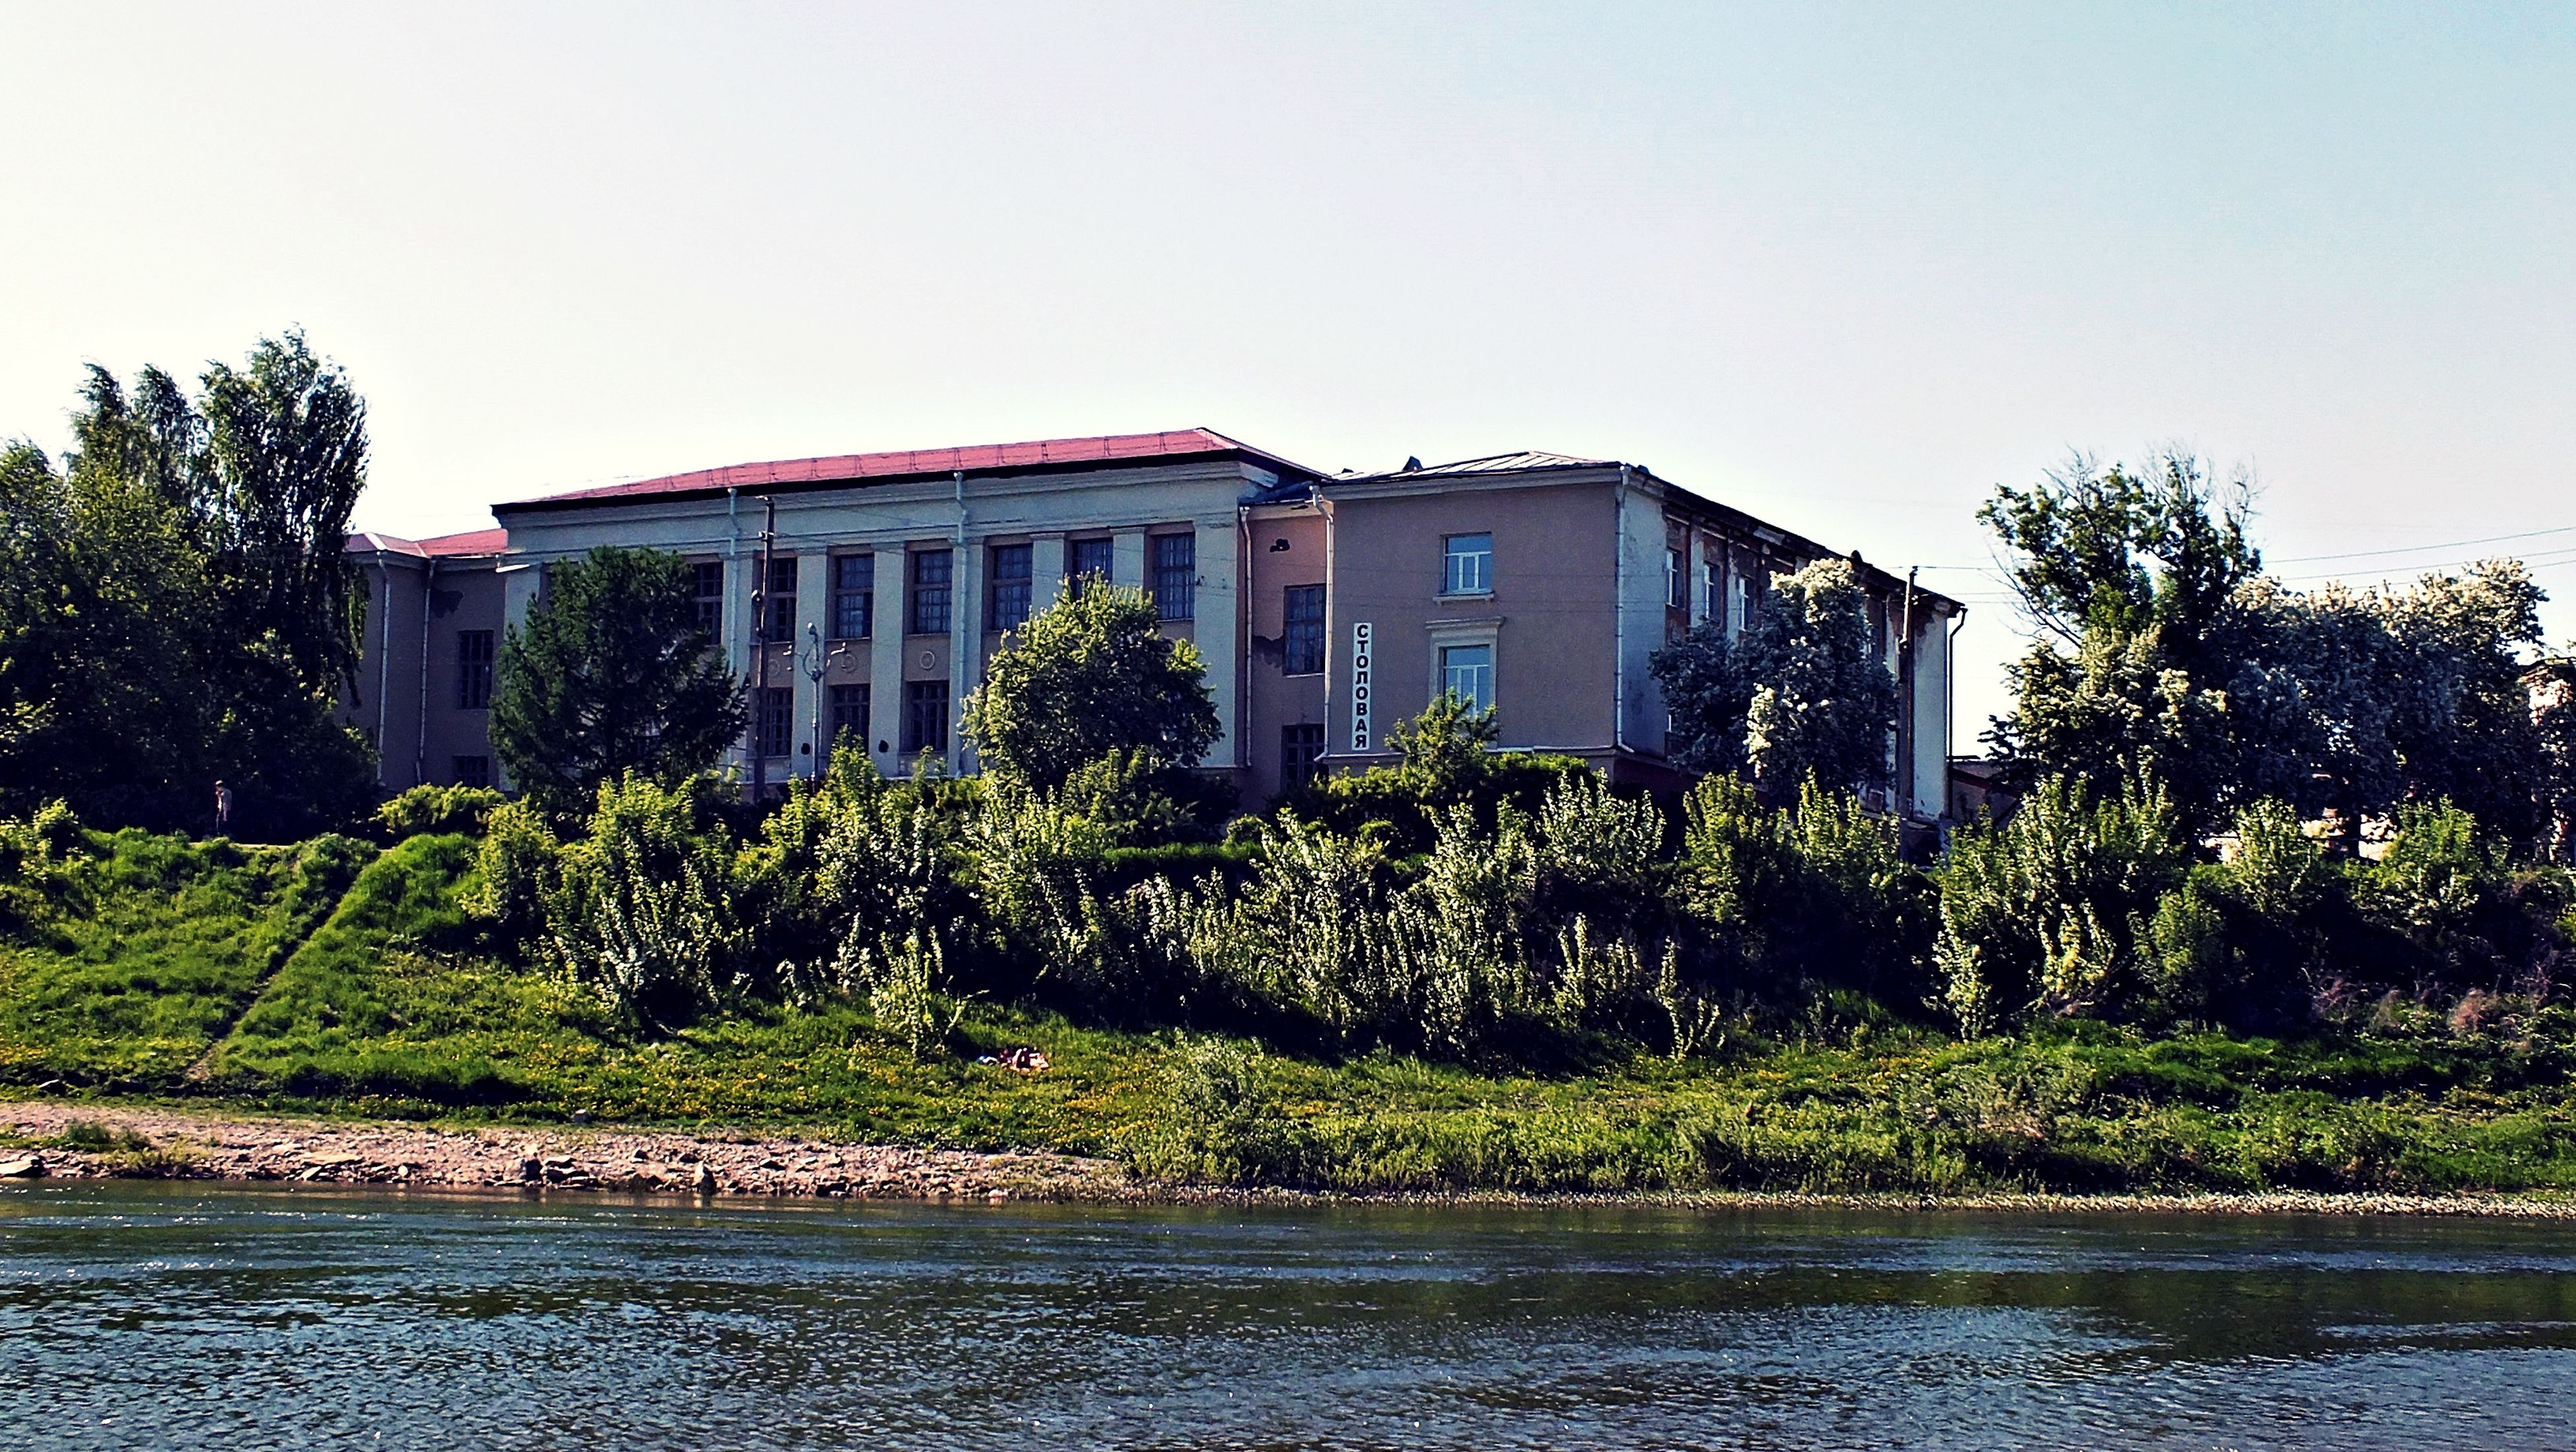 building exterior, architecture, built structure, clear sky, tree, water, growth, plant, house, waterfront, green color, residential building, residential structure, sky, day, copy space, no people, building, nature, outdoors